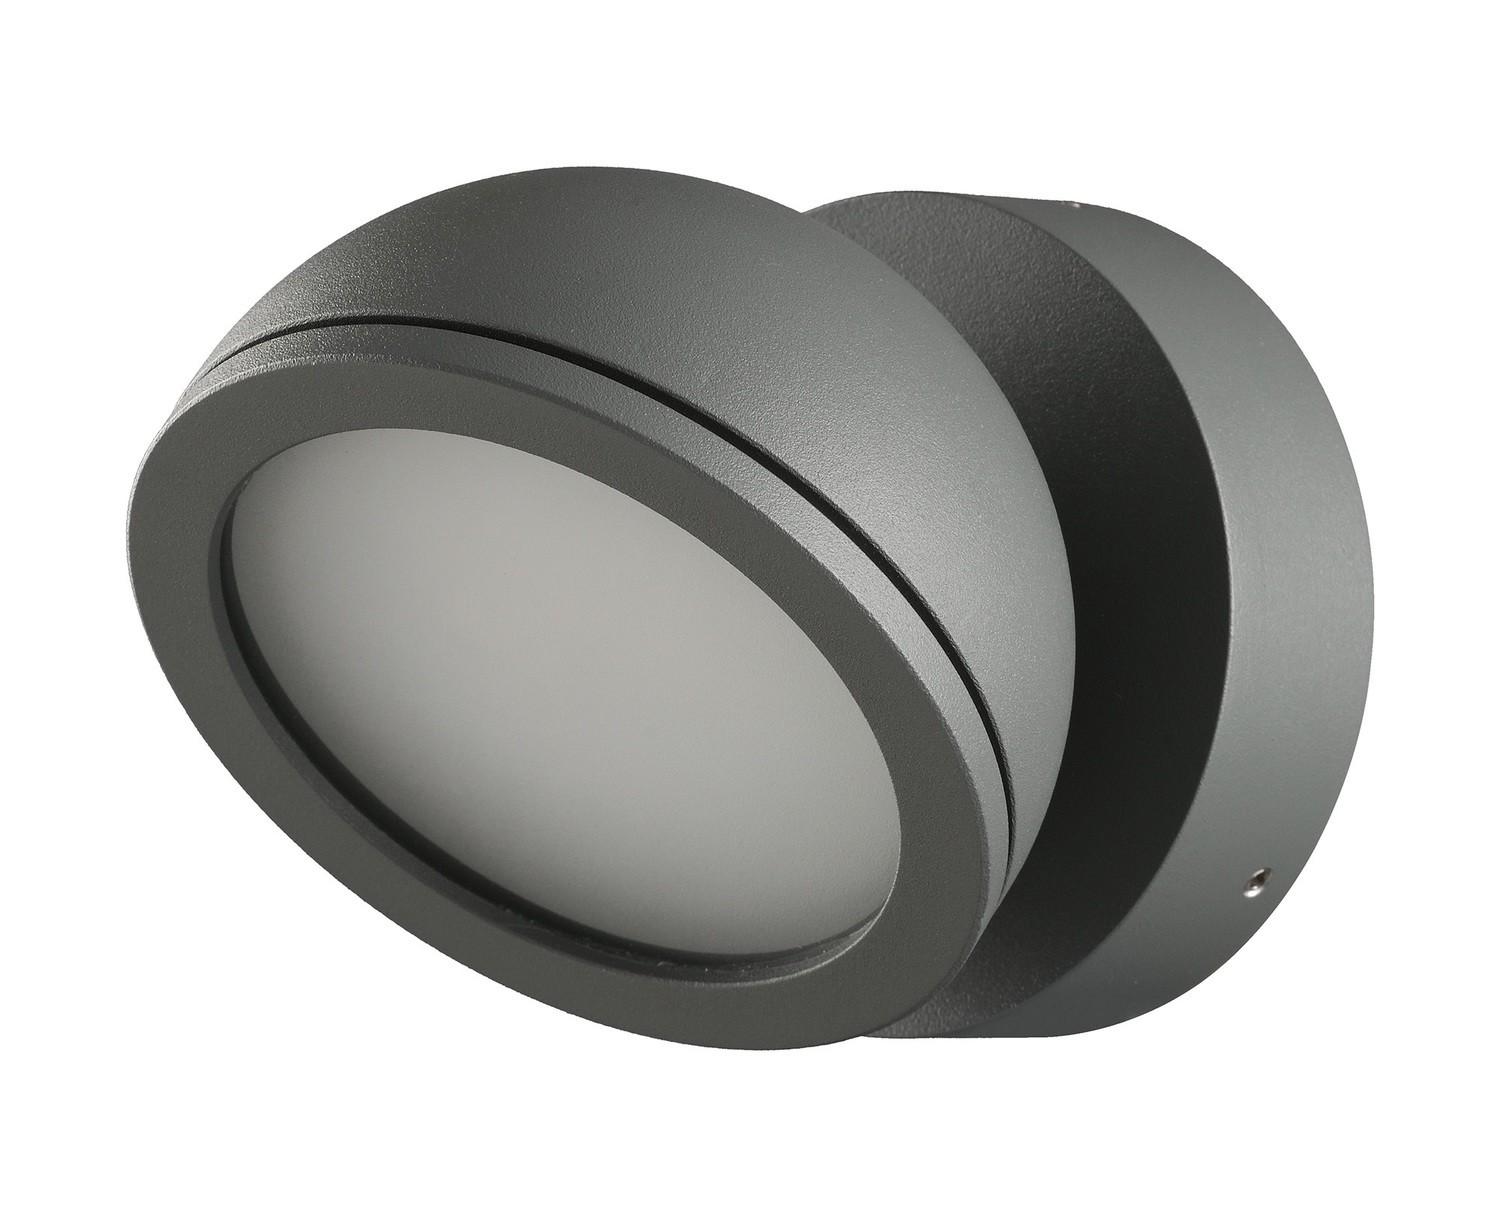 Everest Wall Lamp for GX53 LED lightsource, IP54, Anthracite